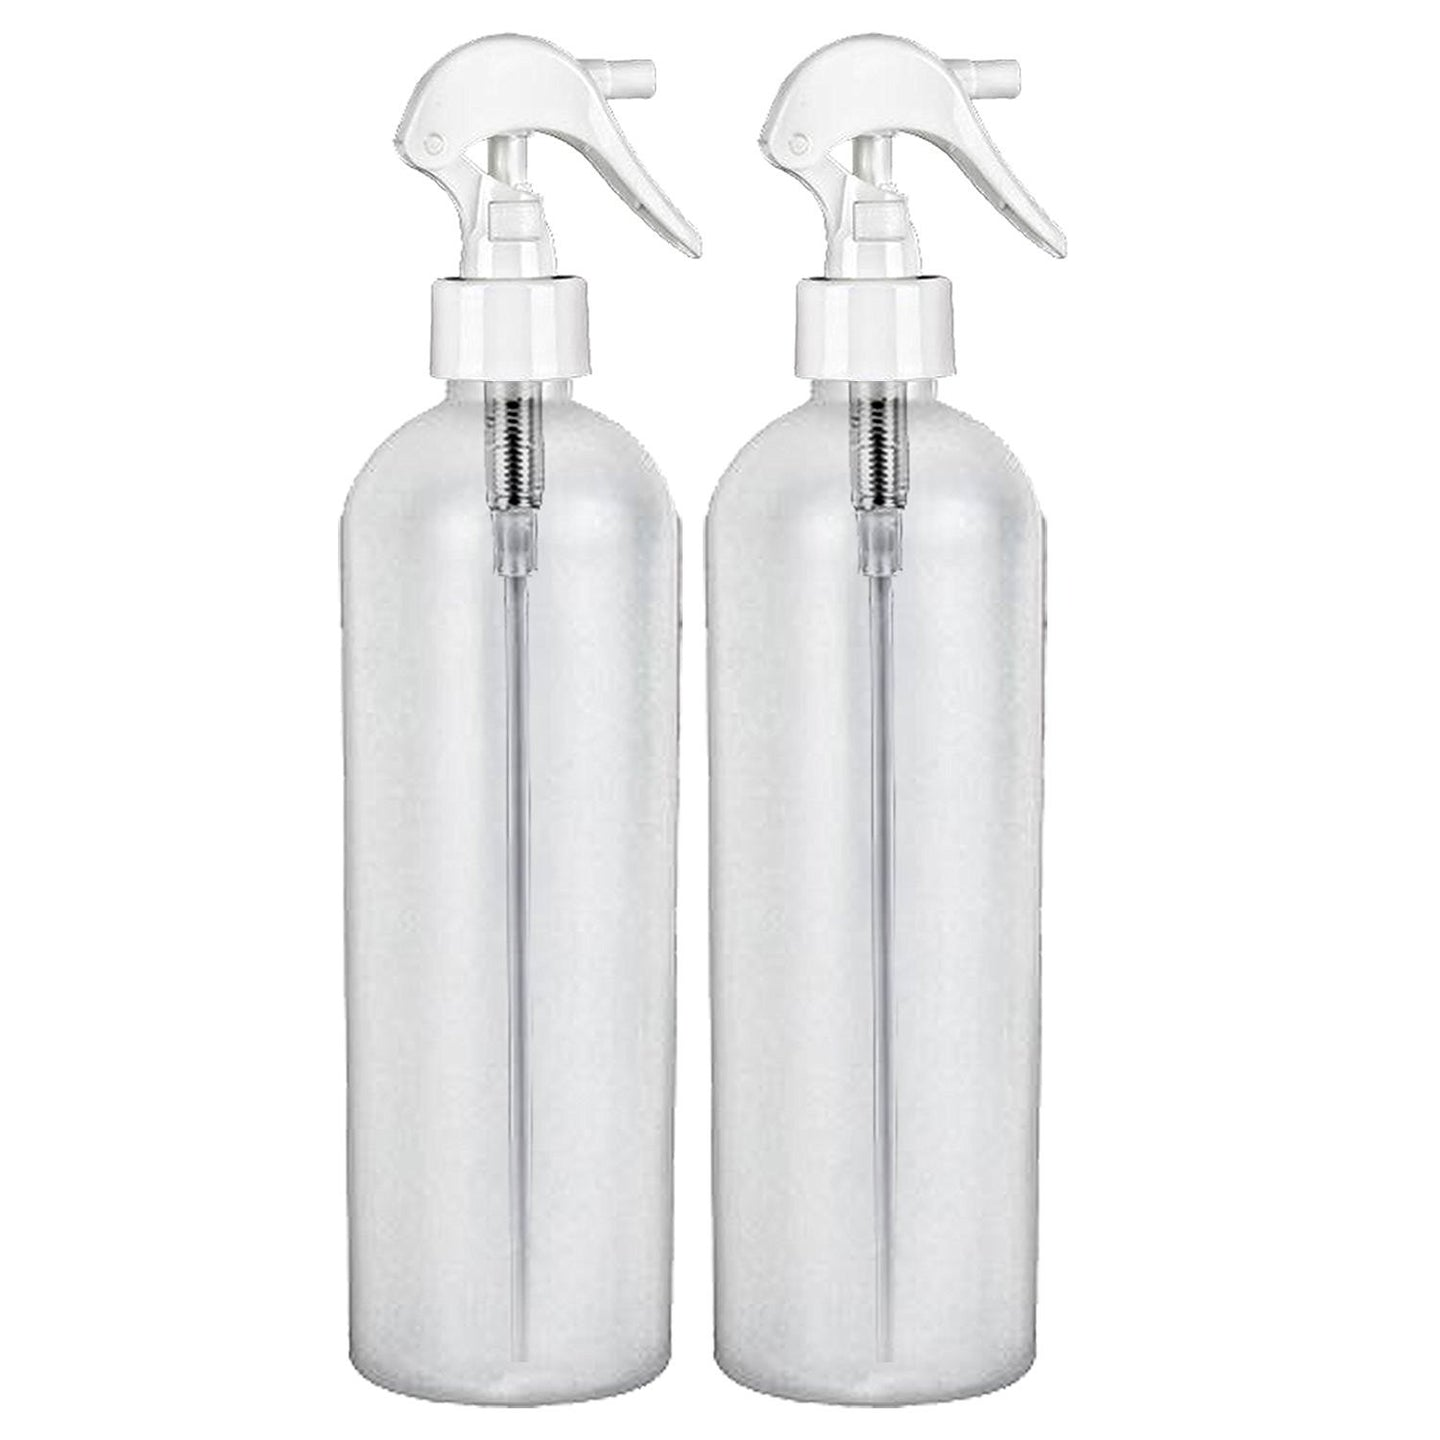 Moyo Natural Labs 16 Oz HDPE Fine Mist Bottle with Trigger BPA Free Container Refillable Reusable Made in USA Pack of 2